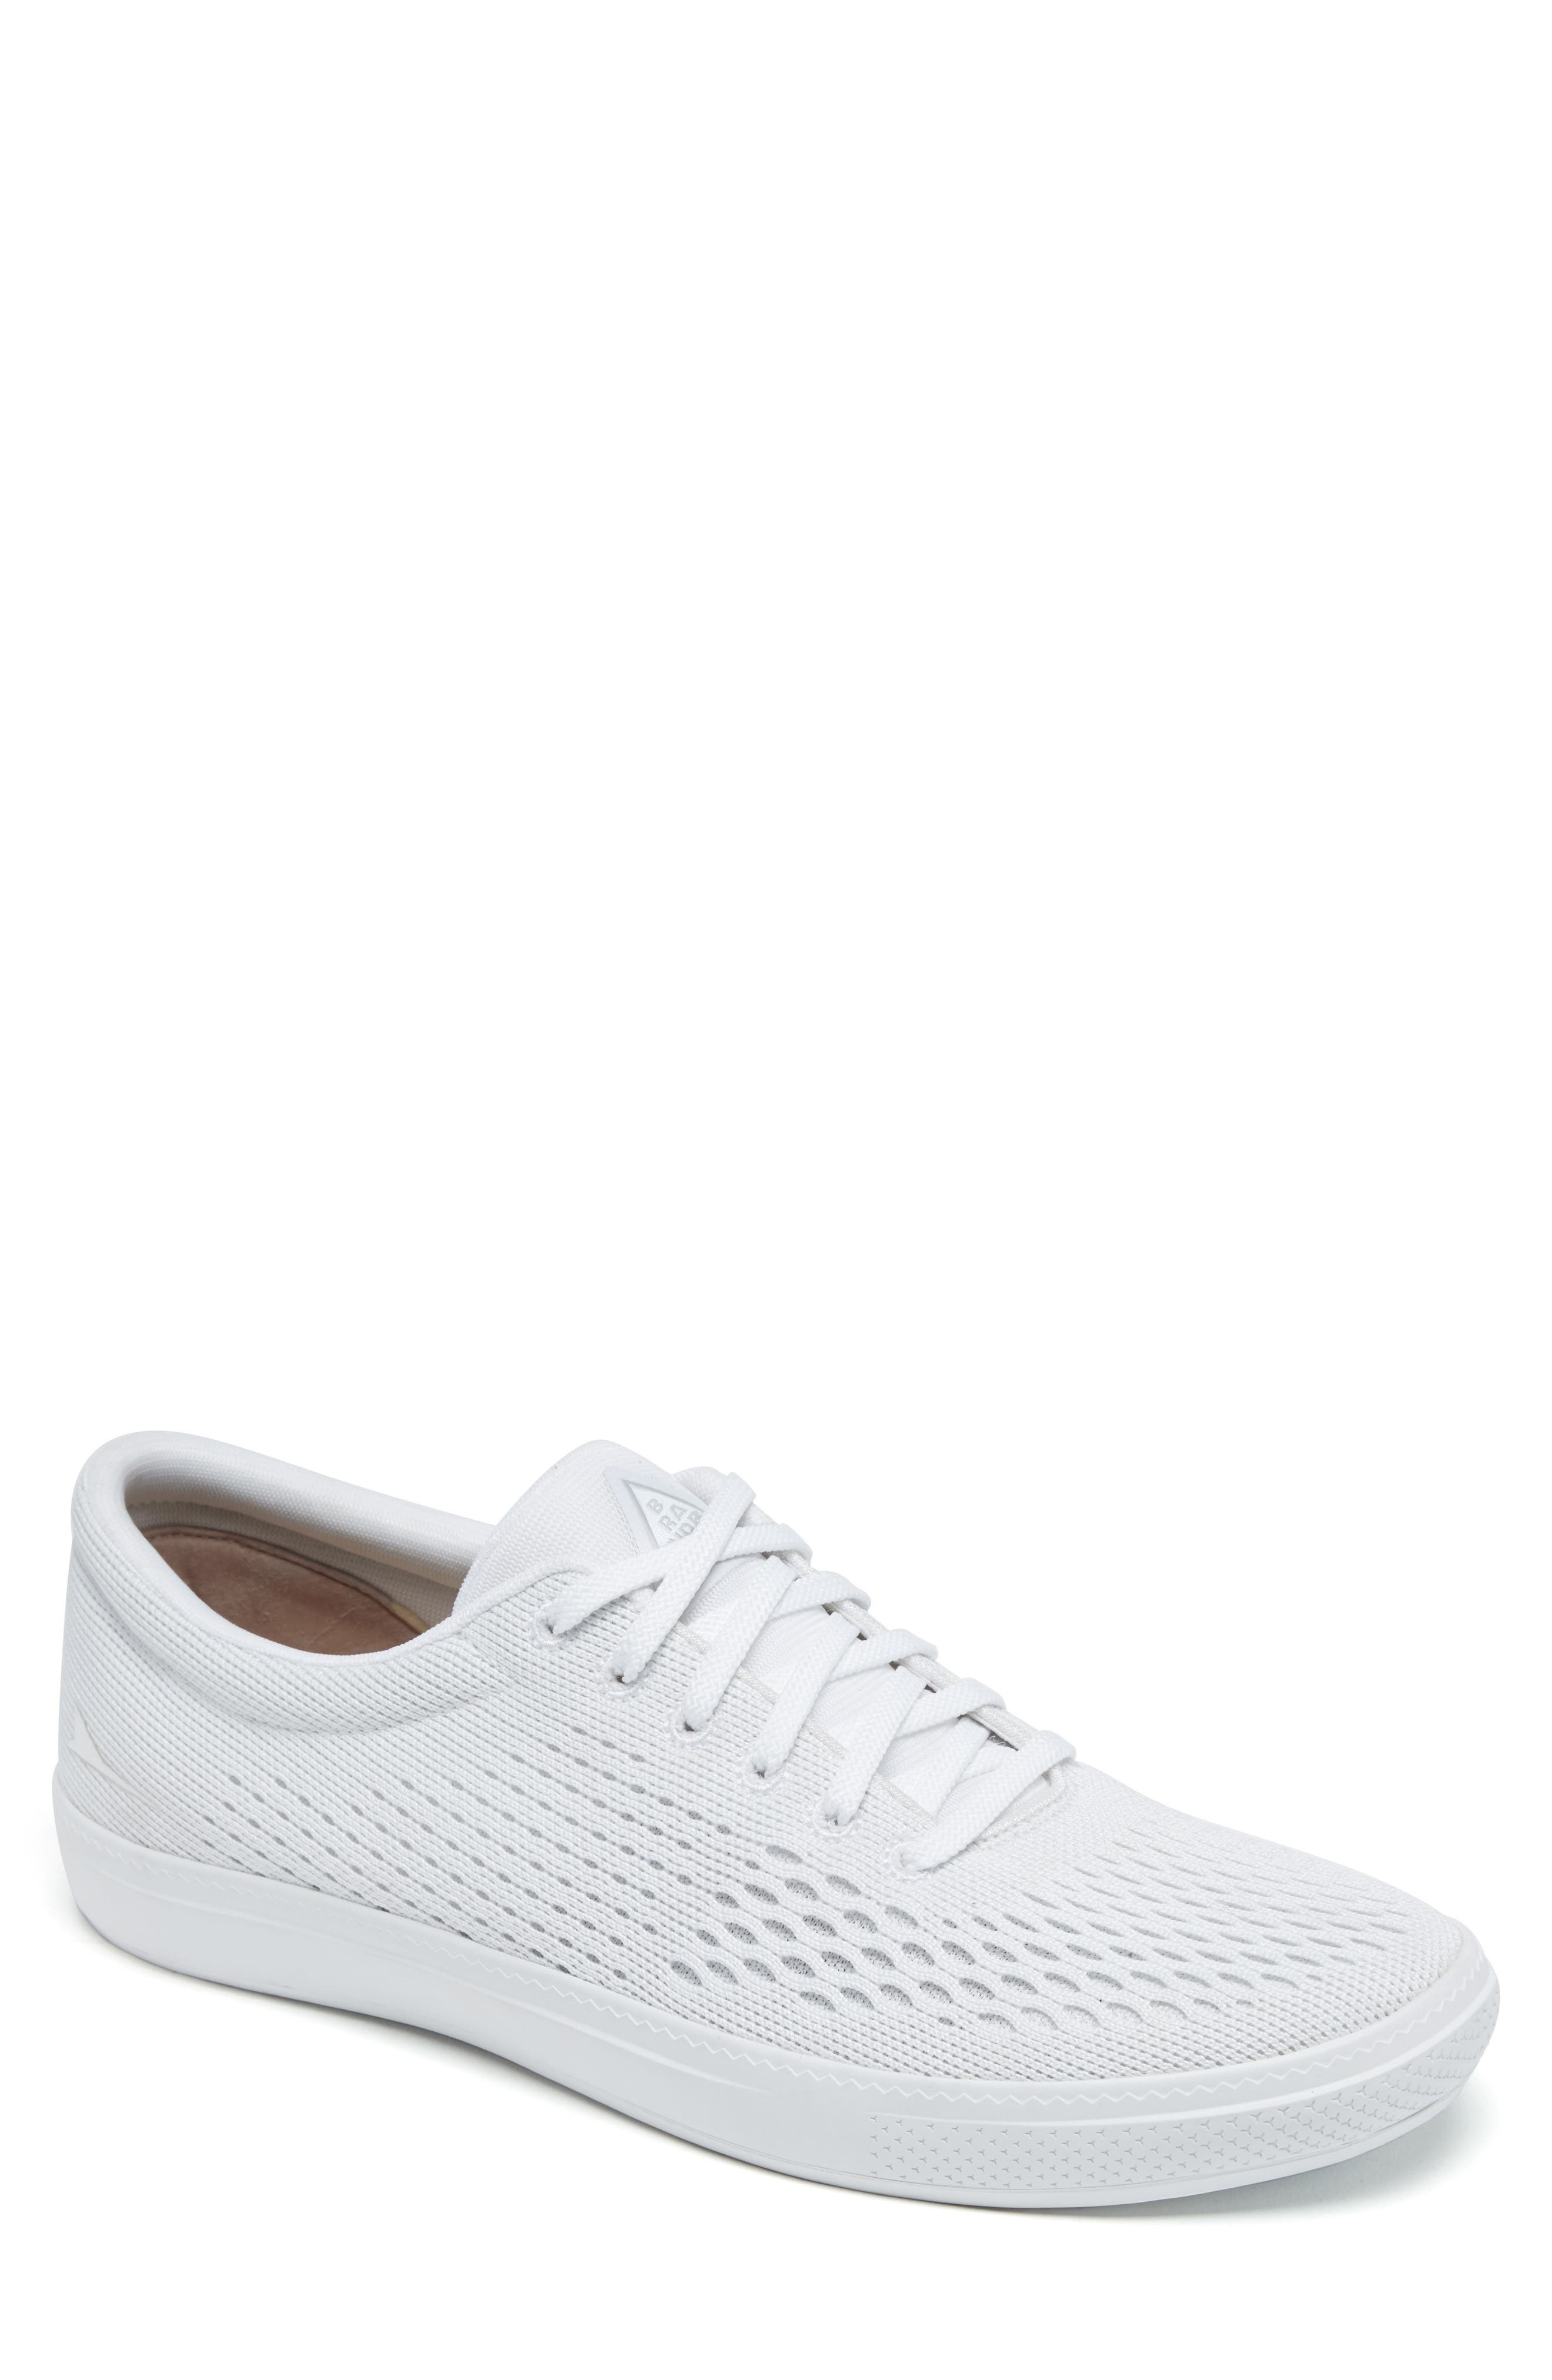 August II Sneaker,                         Main,                         color, WHITE